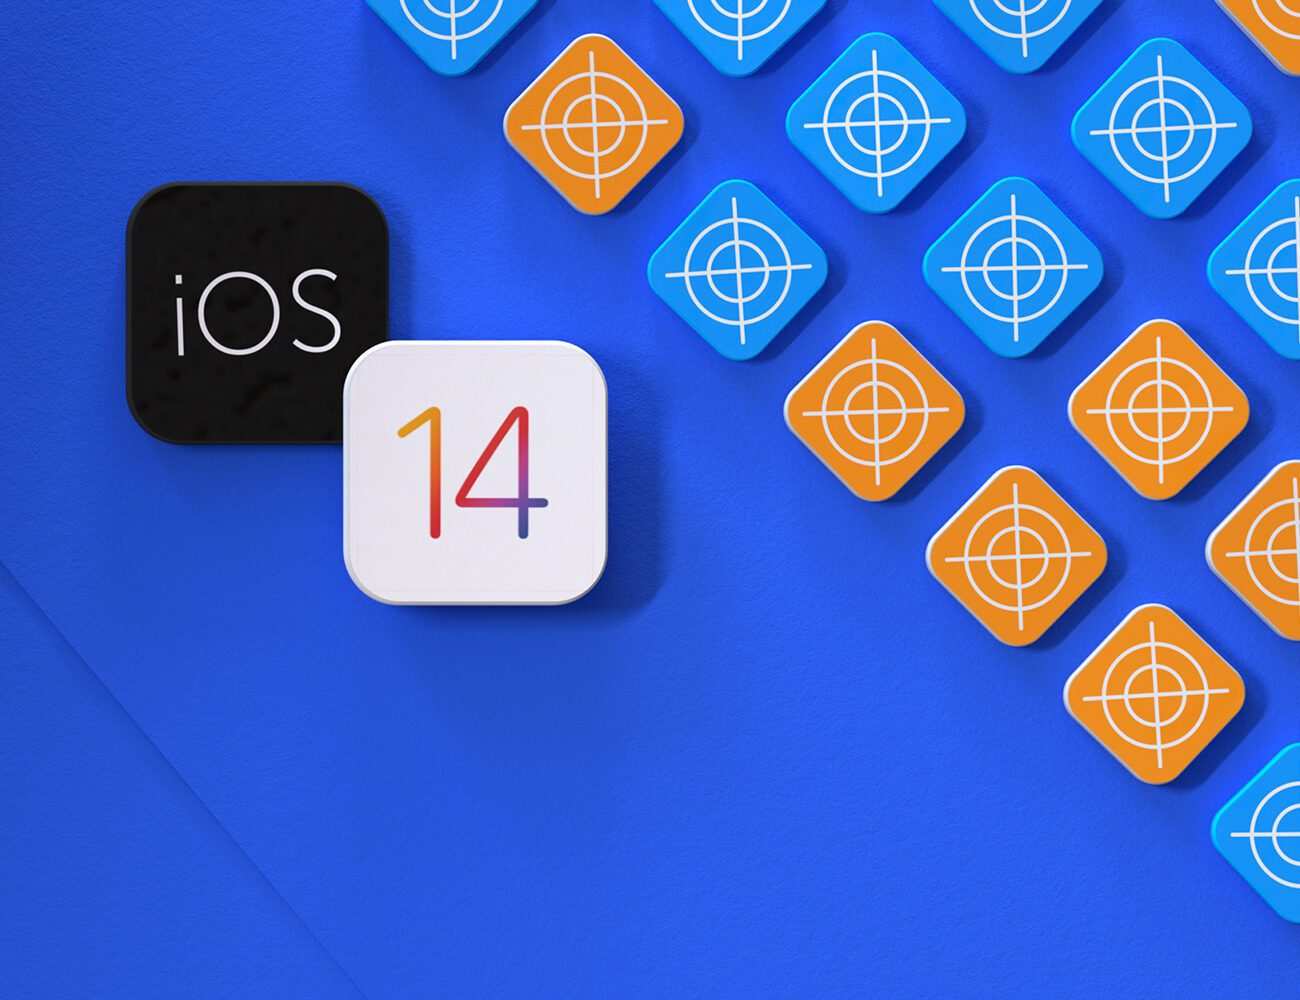 8 features of iOS 14 that will affect ASO and app marketing